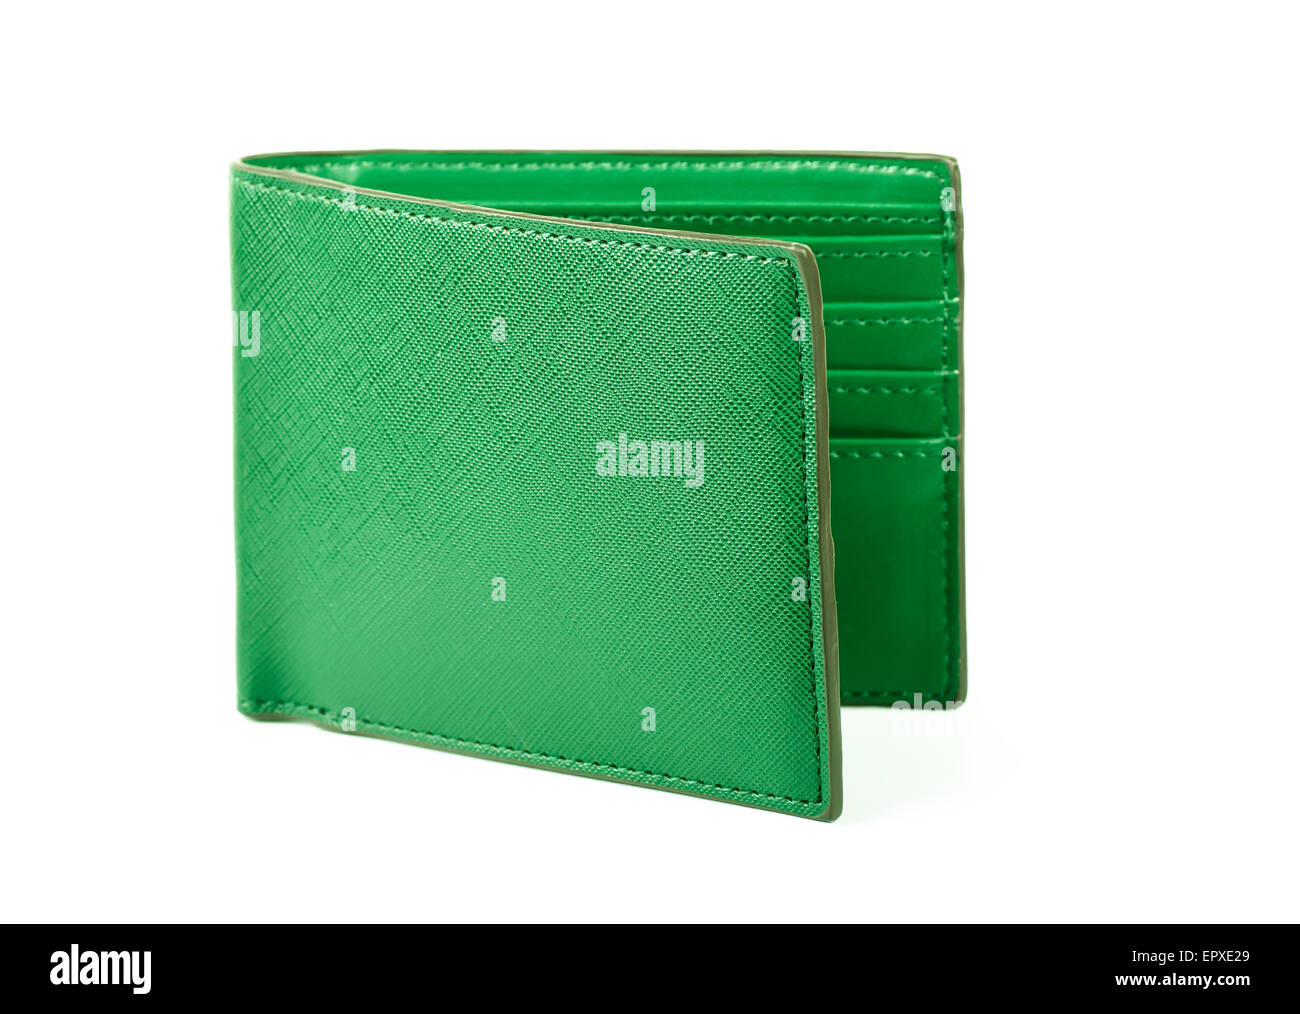 Green wallet on a white background - Stock Image